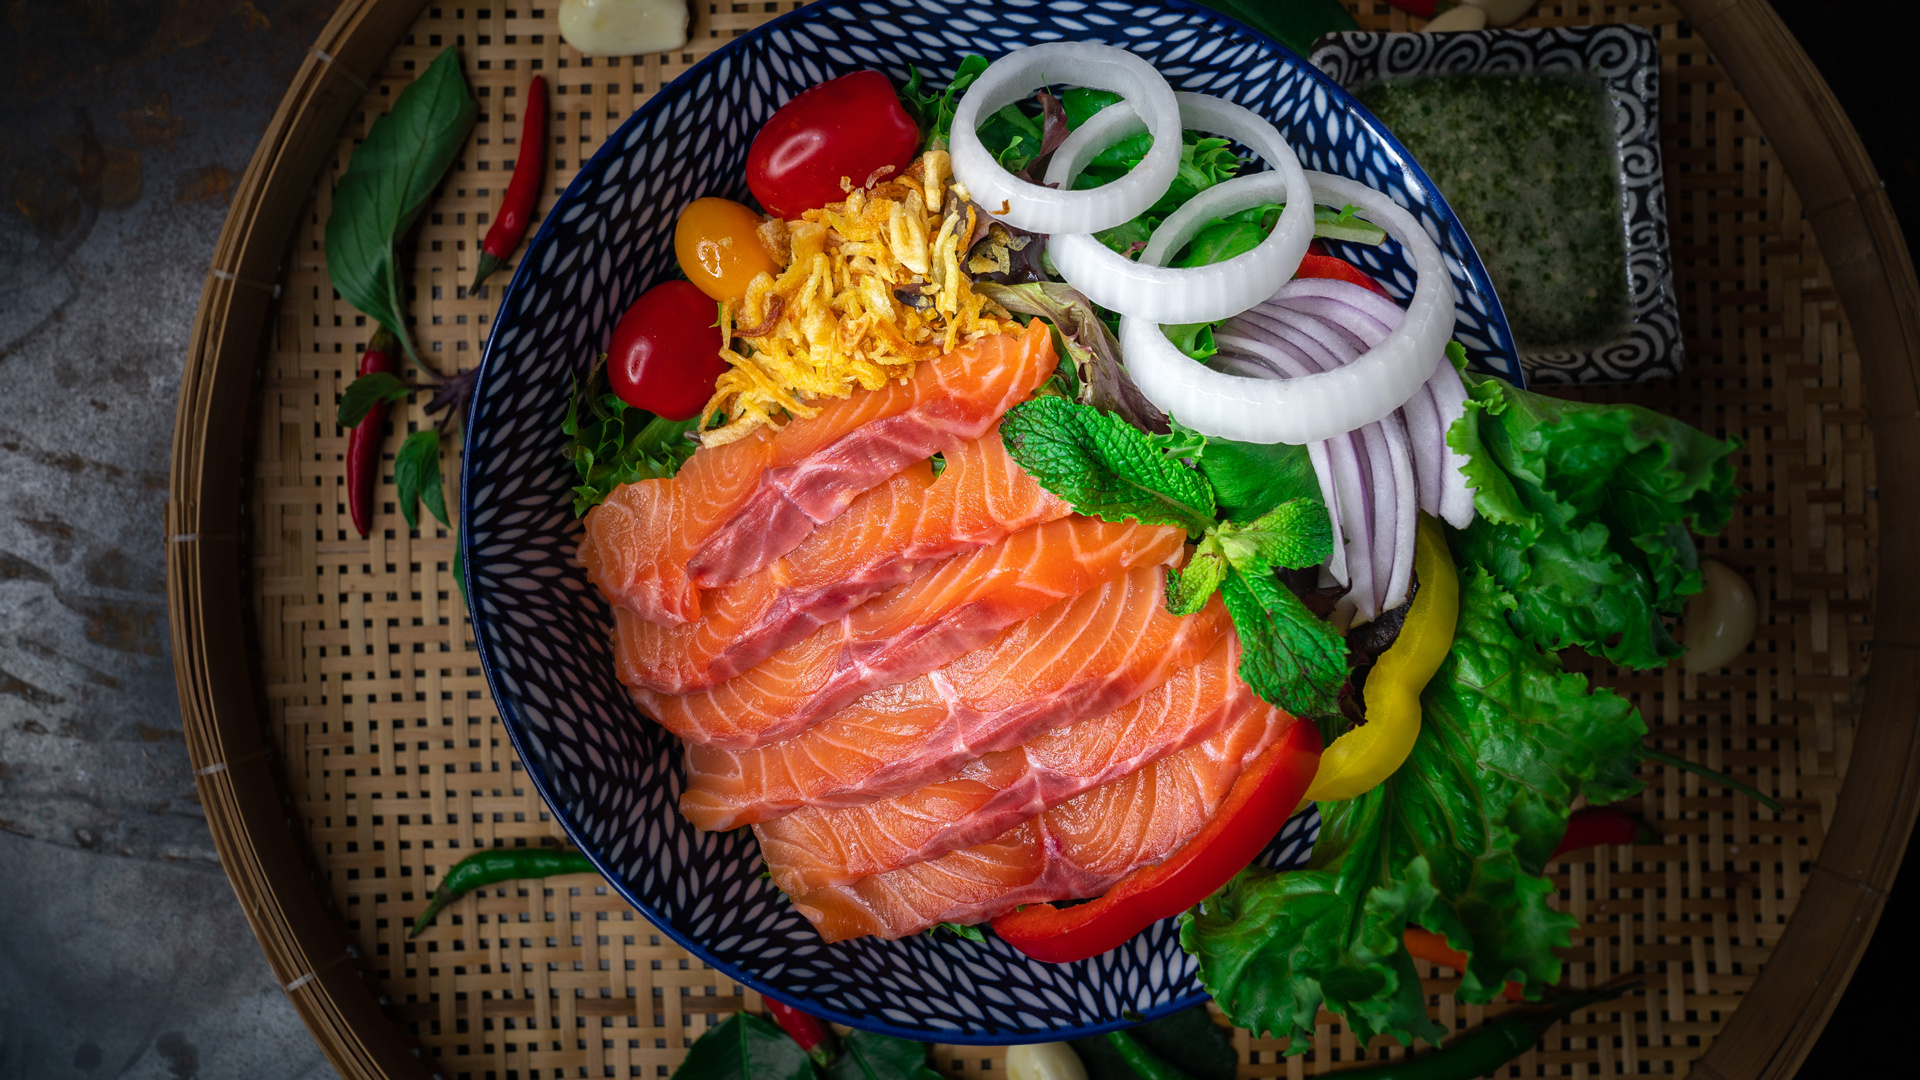 The best new restaurants in Toronto | Salmon Lui Suan Salad available for takeout and dine-in at Maya Bay